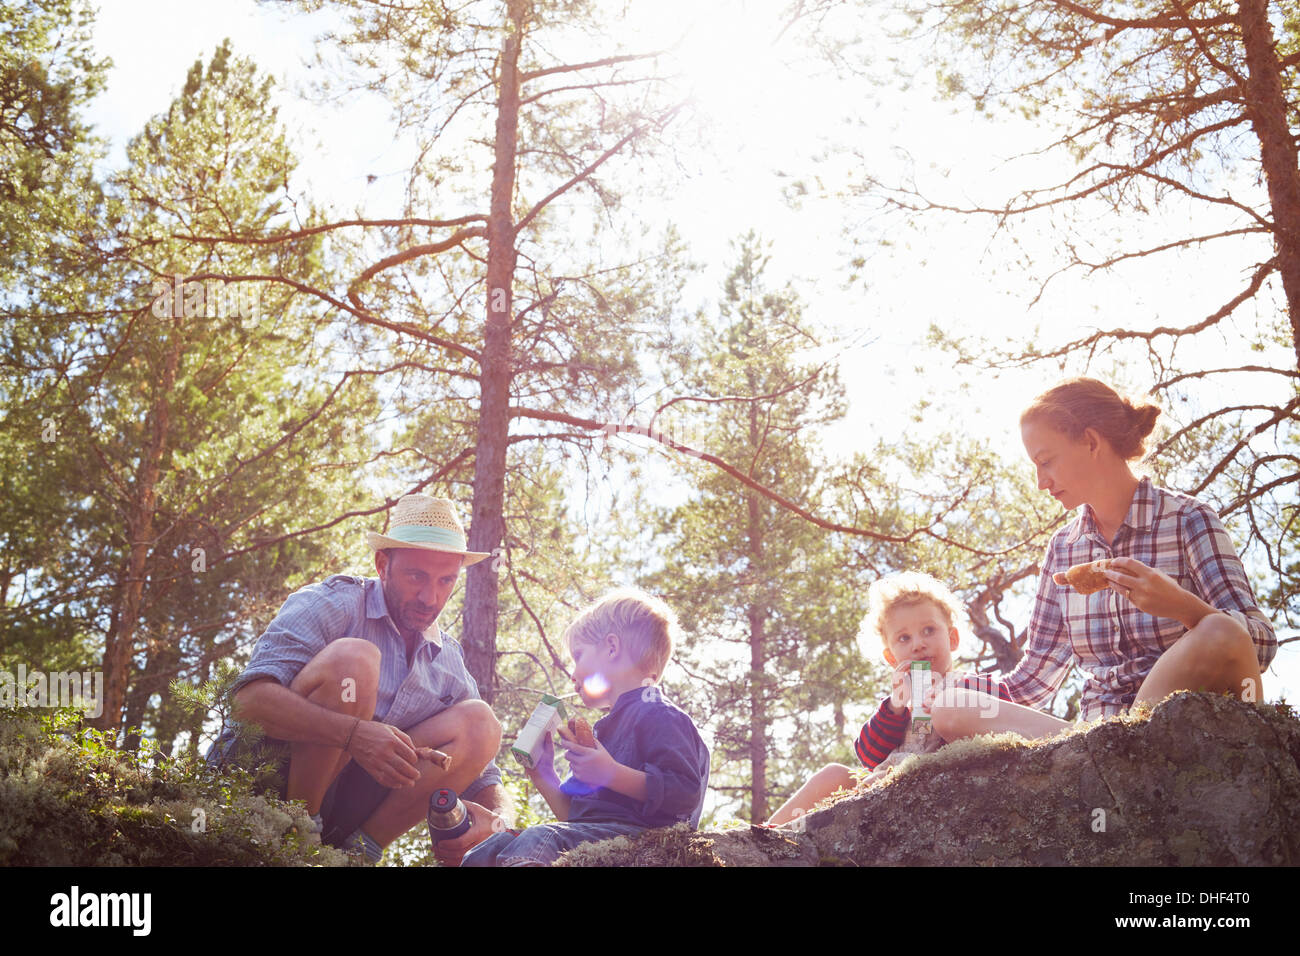 Family having picnic sitting on rocks - Stock Image